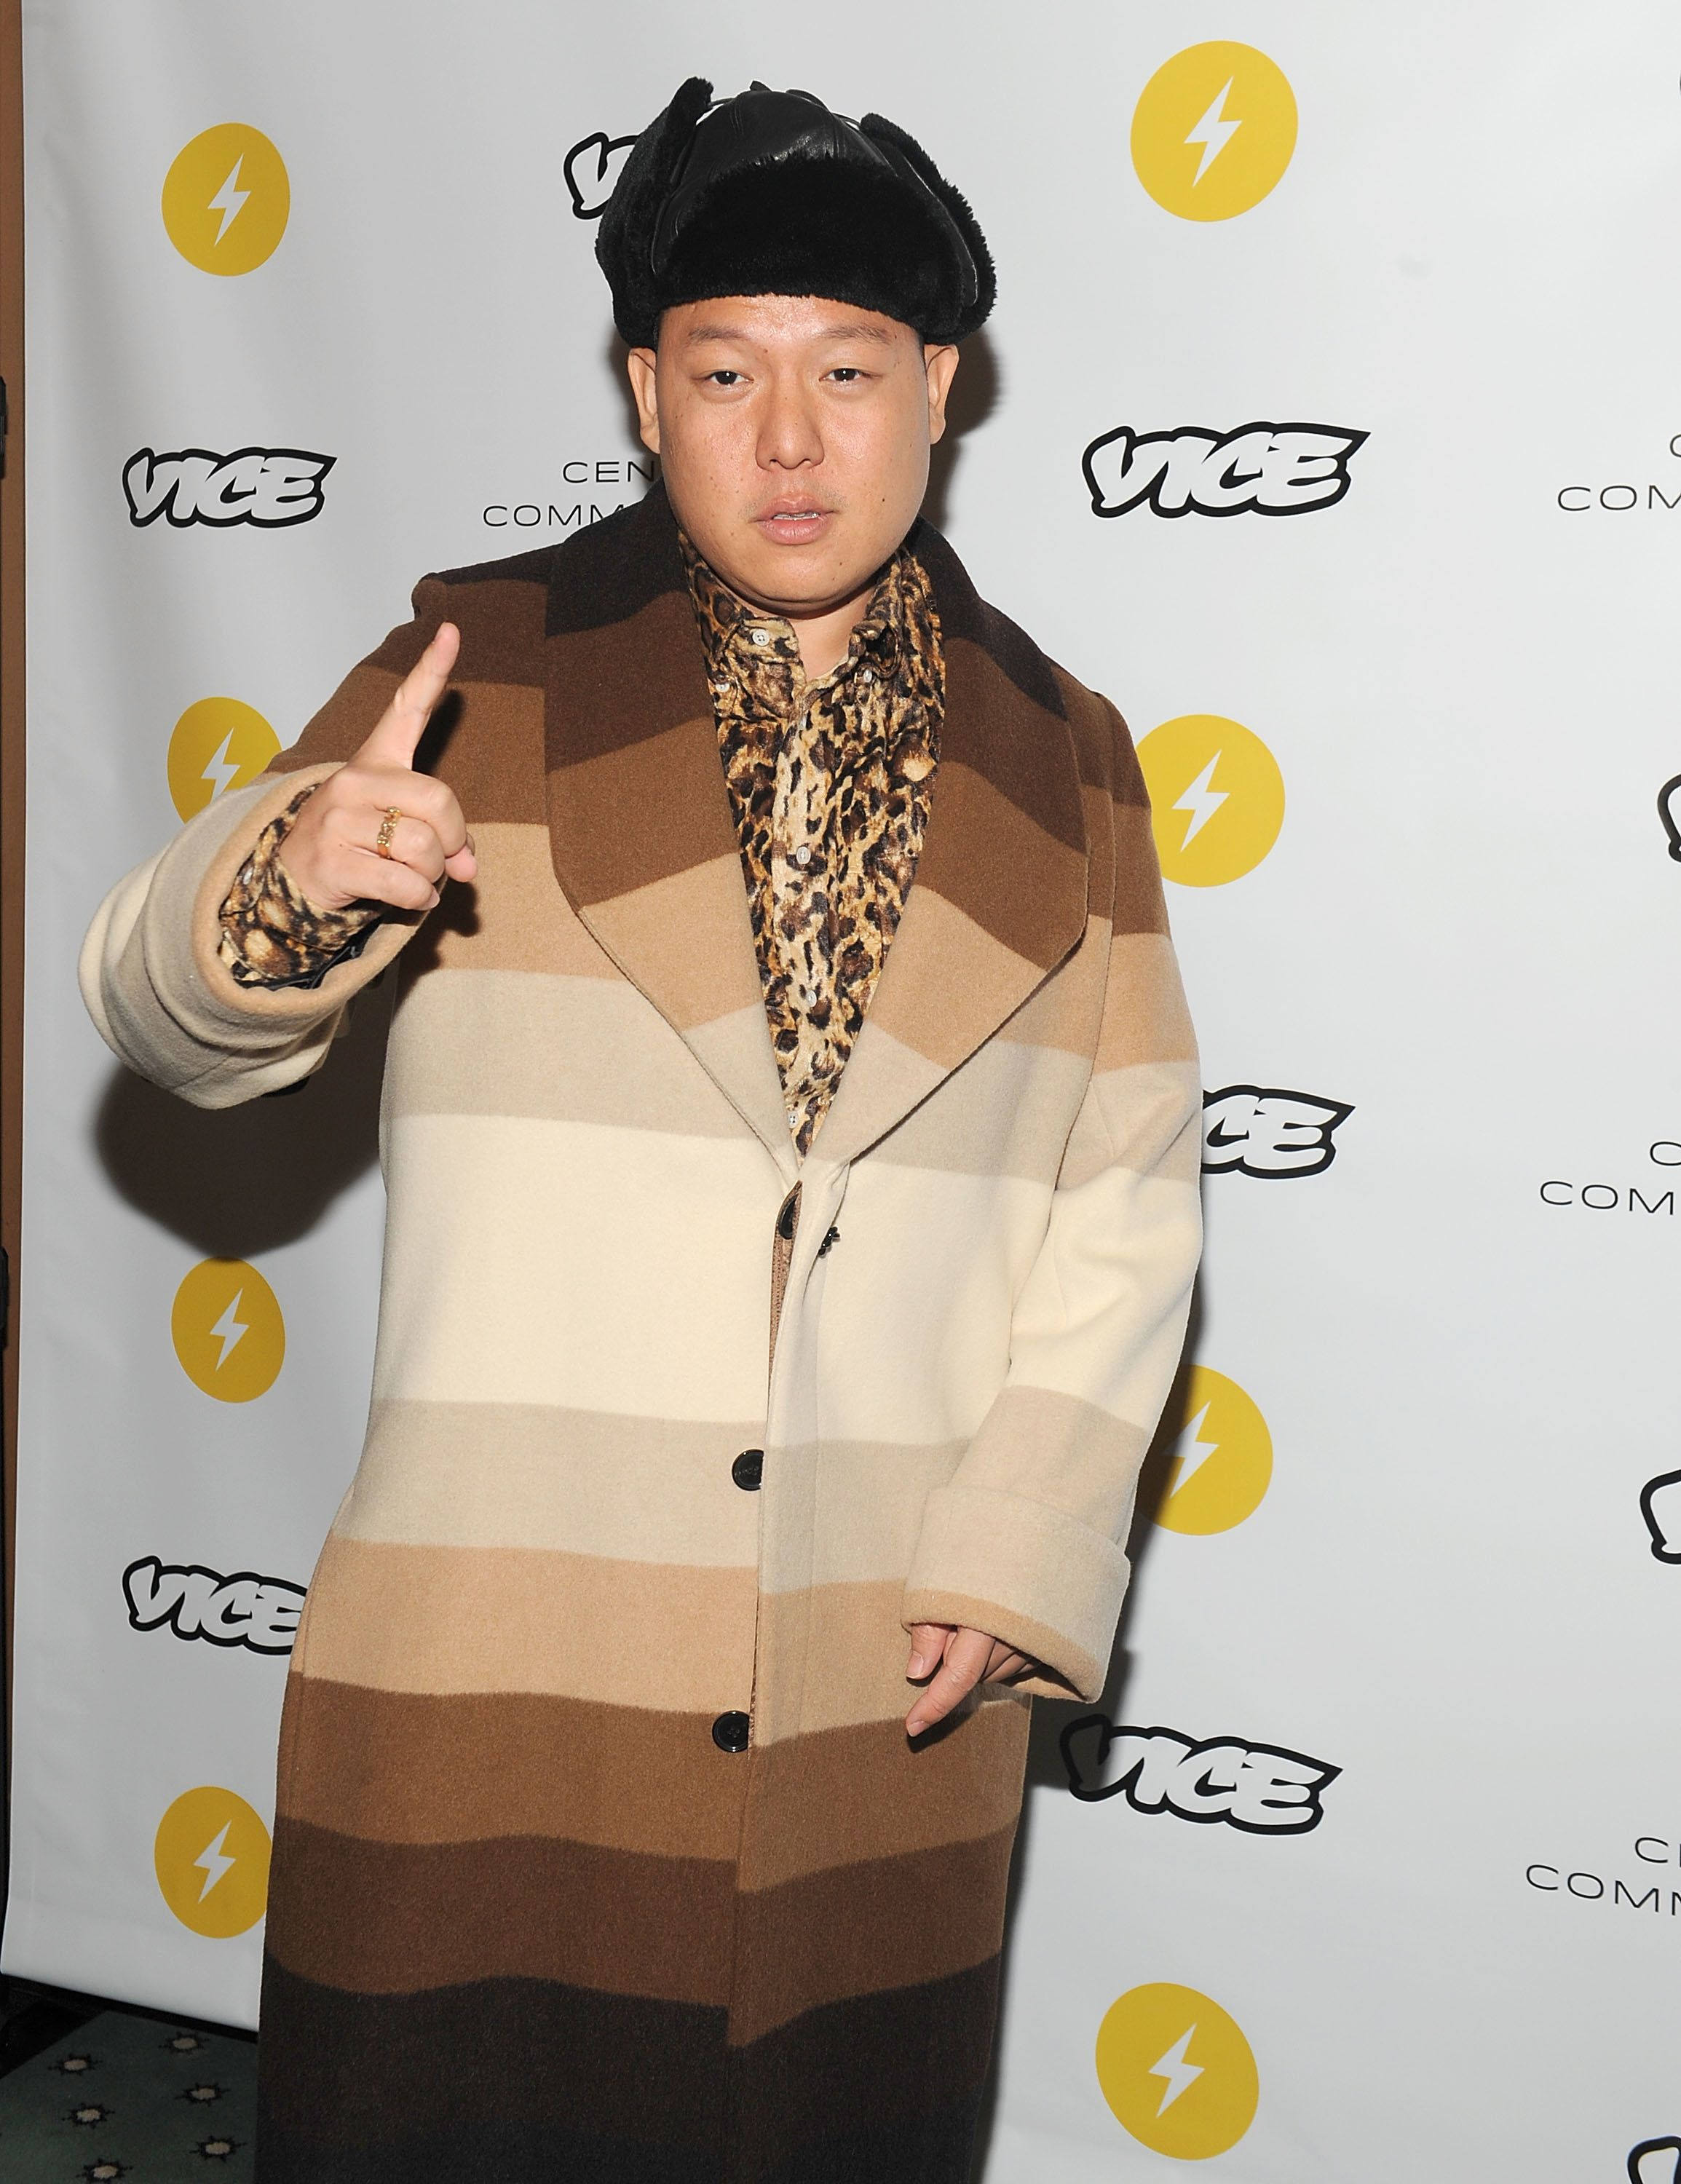 NEW YORK, NY - NOVEMBER 18:  Journalist Eddie Huang attends the Shane Smith Roast By The Center For Communication at Grand Ballroom at the Pierre Hotel on November 18, 2015 in New York City.  (Photo by Brad Barket/Getty Images)